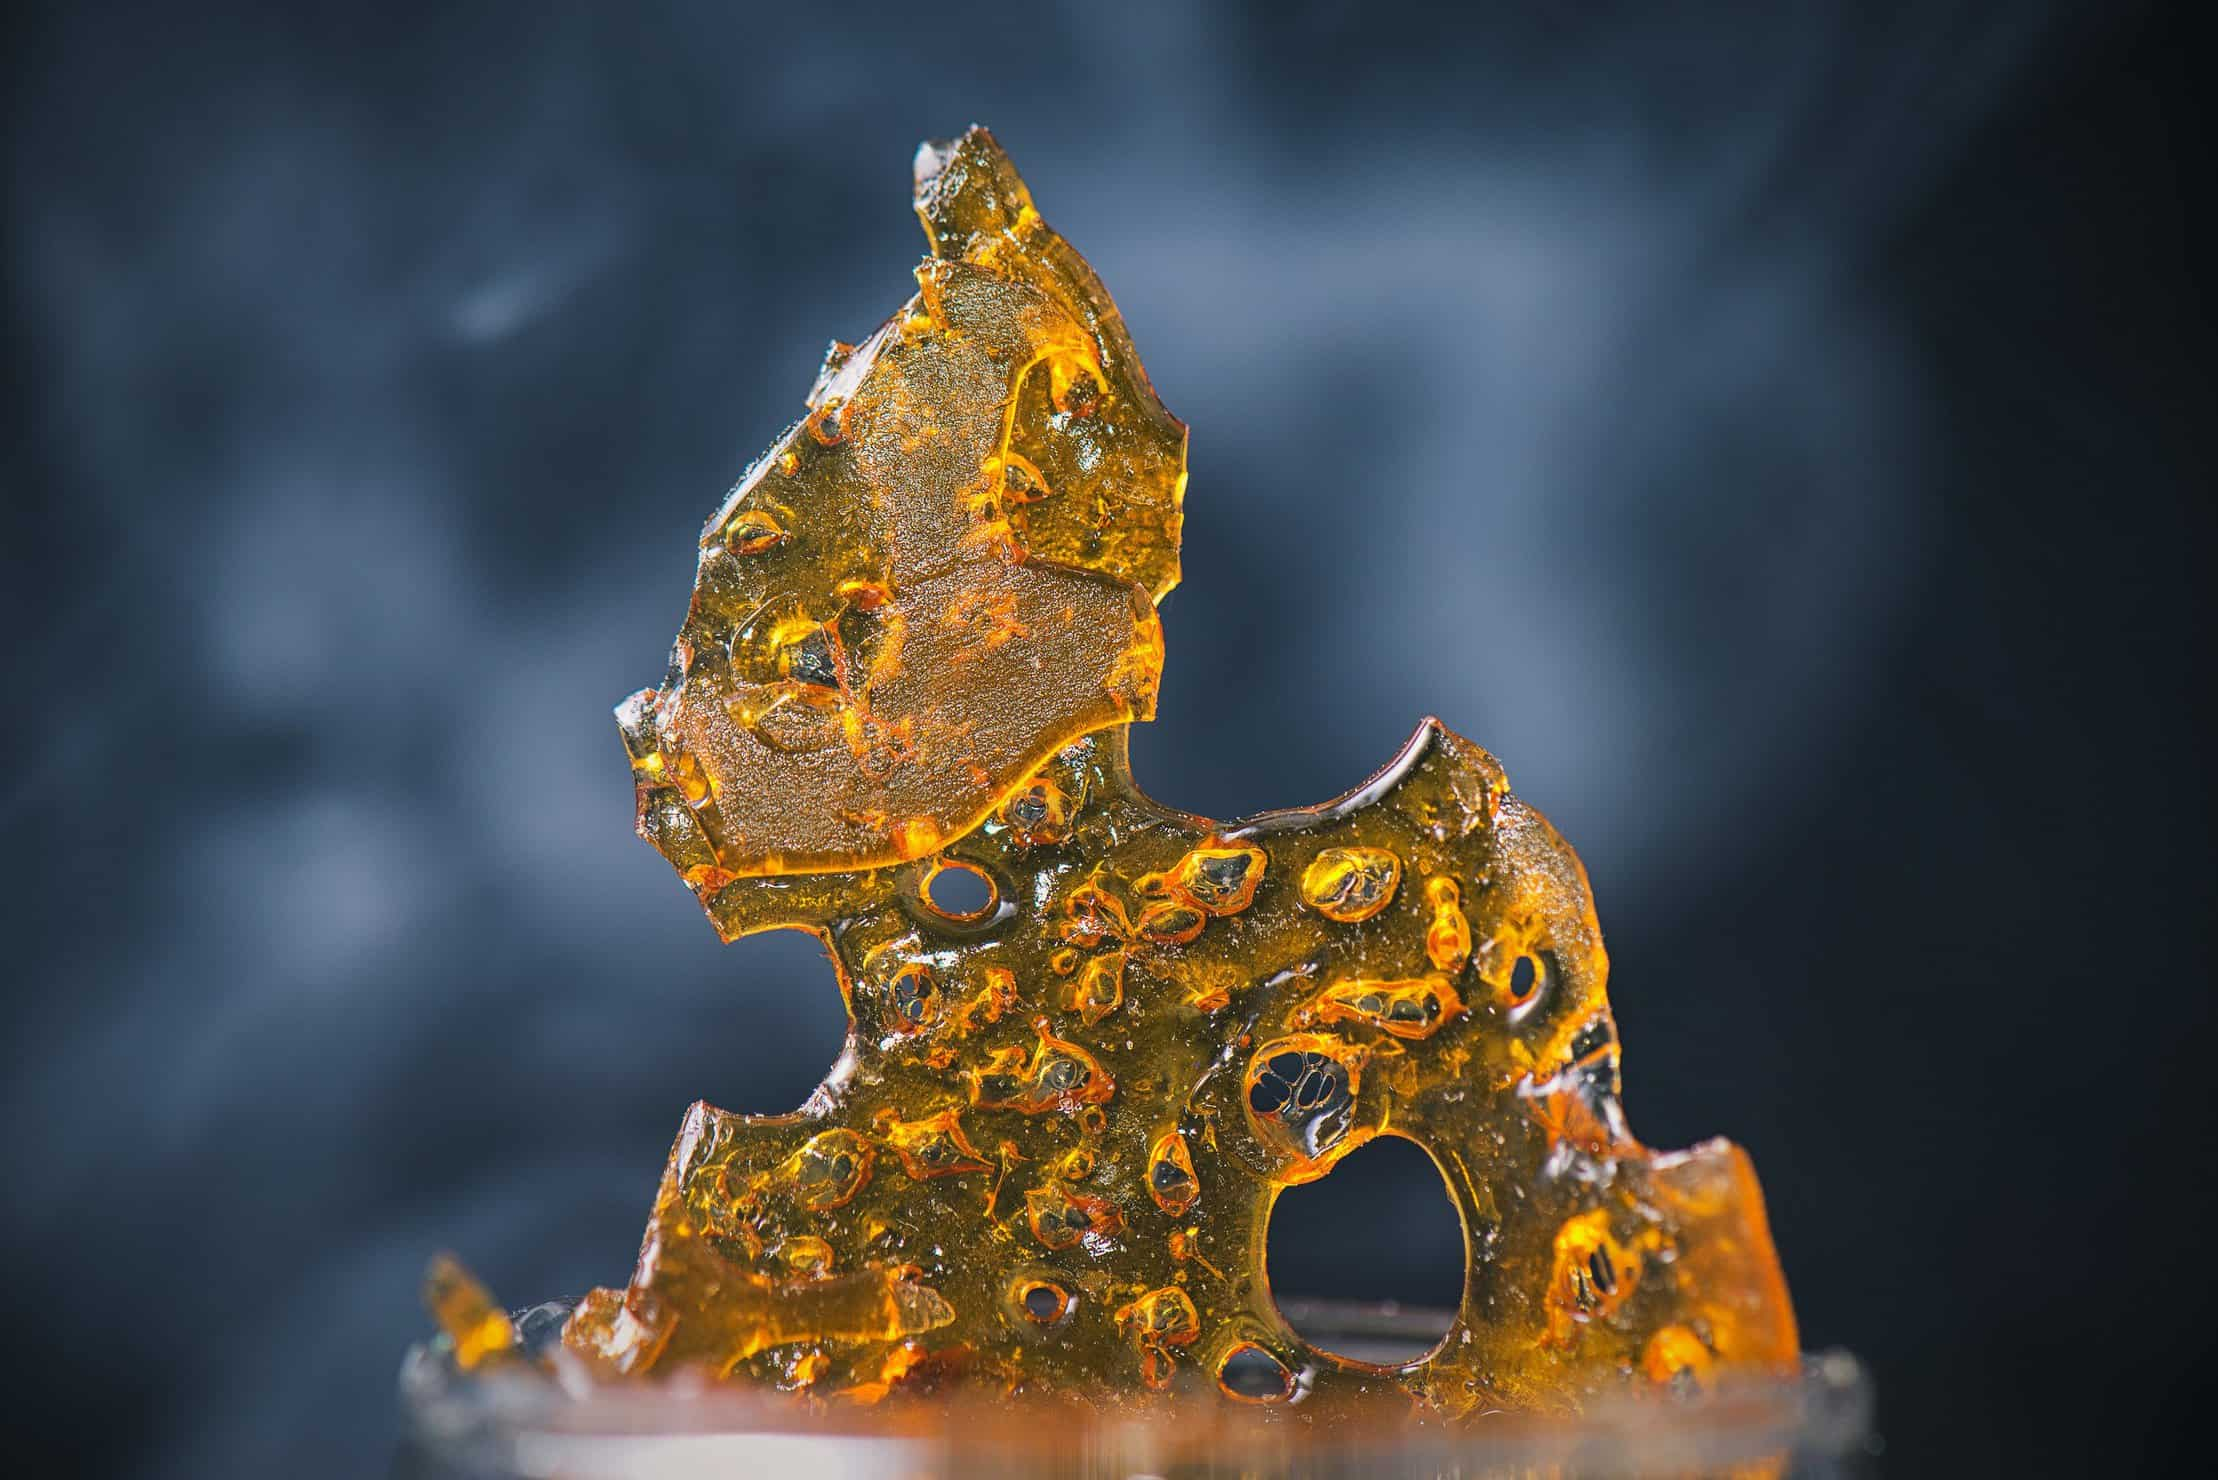 Shatter, Wax, and Rosin: Know Your Marijuana Concentrates